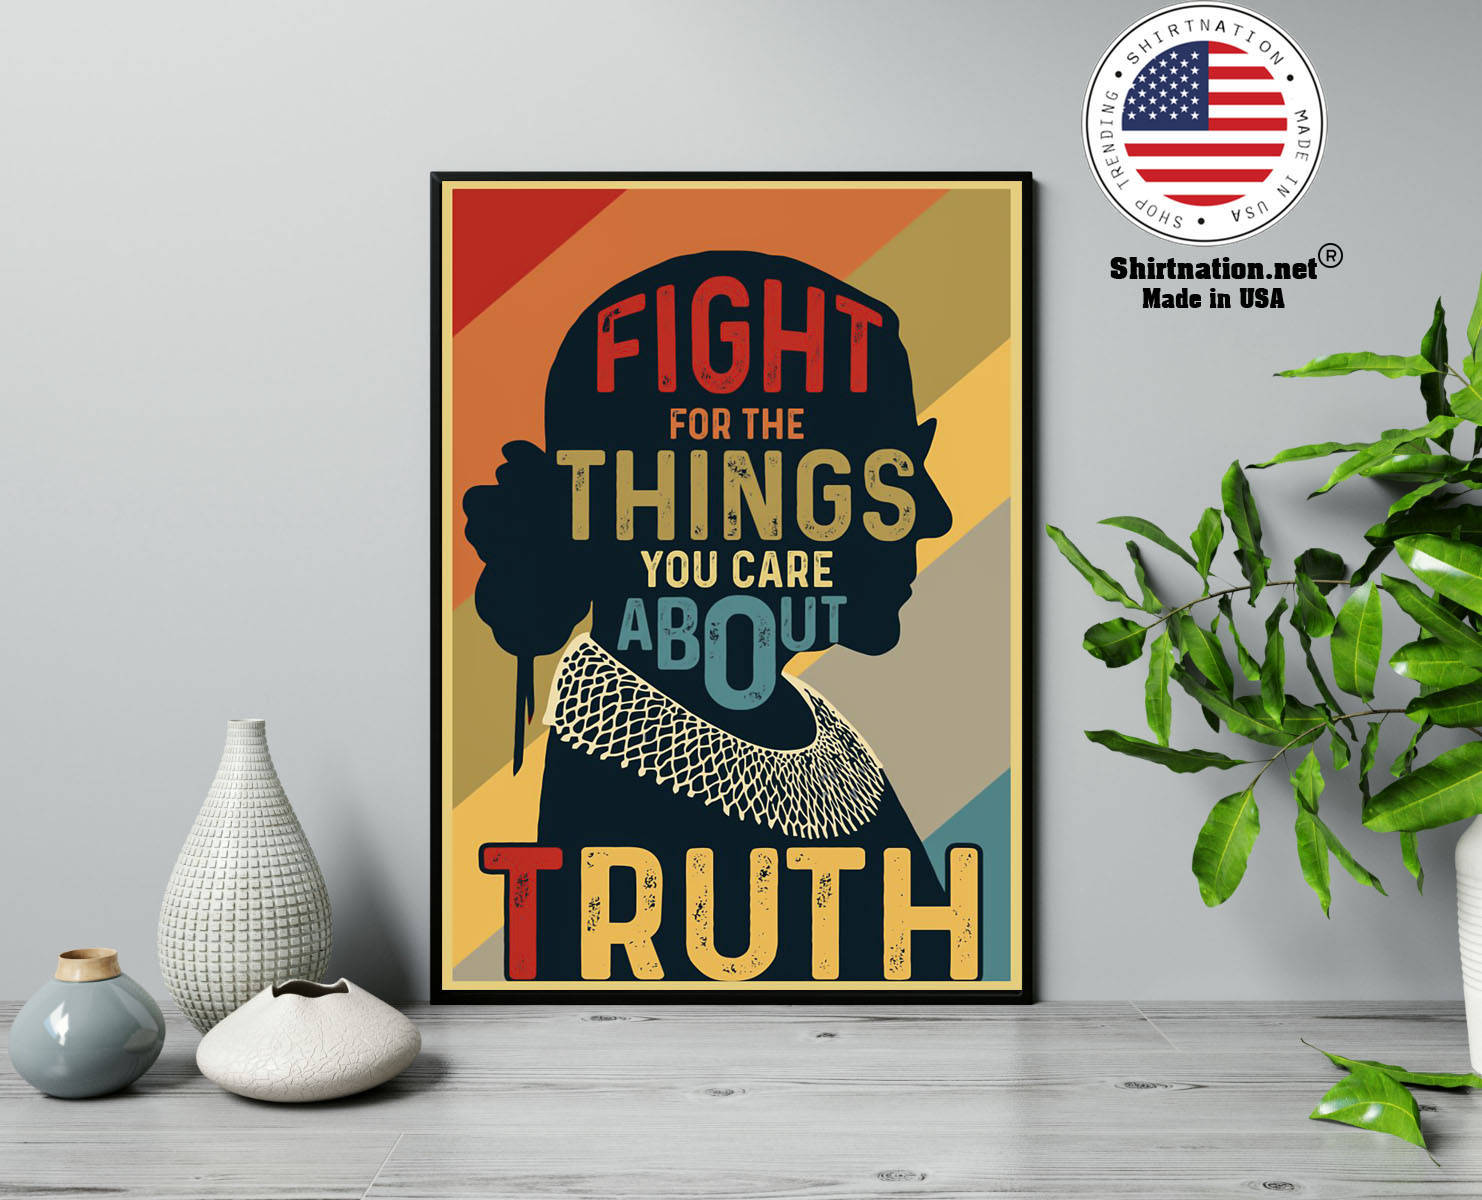 Ruth Fight for the things you care about truth poster 13